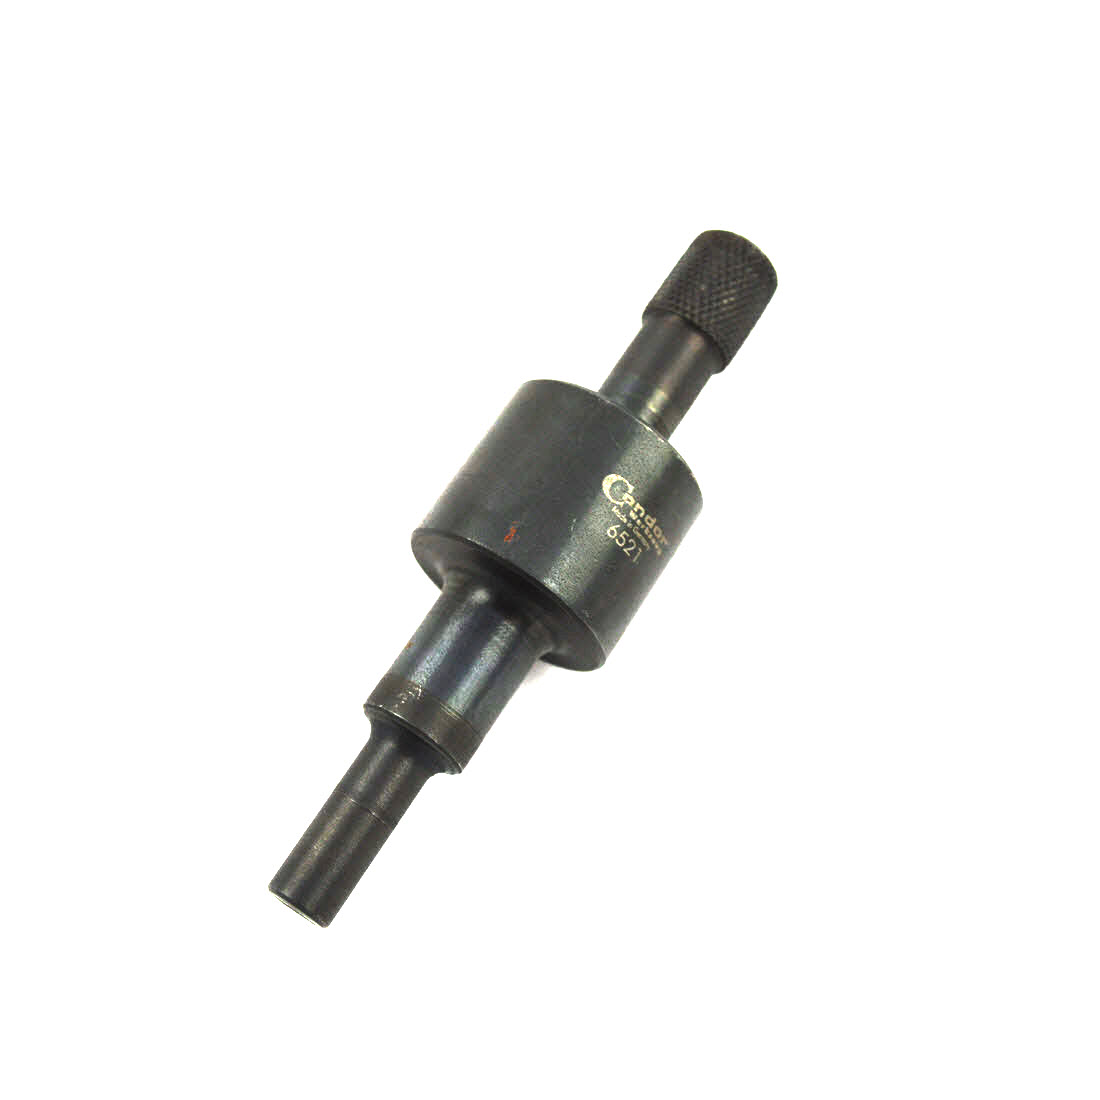 Locking Pin For PSA 1.8 16v Petrol